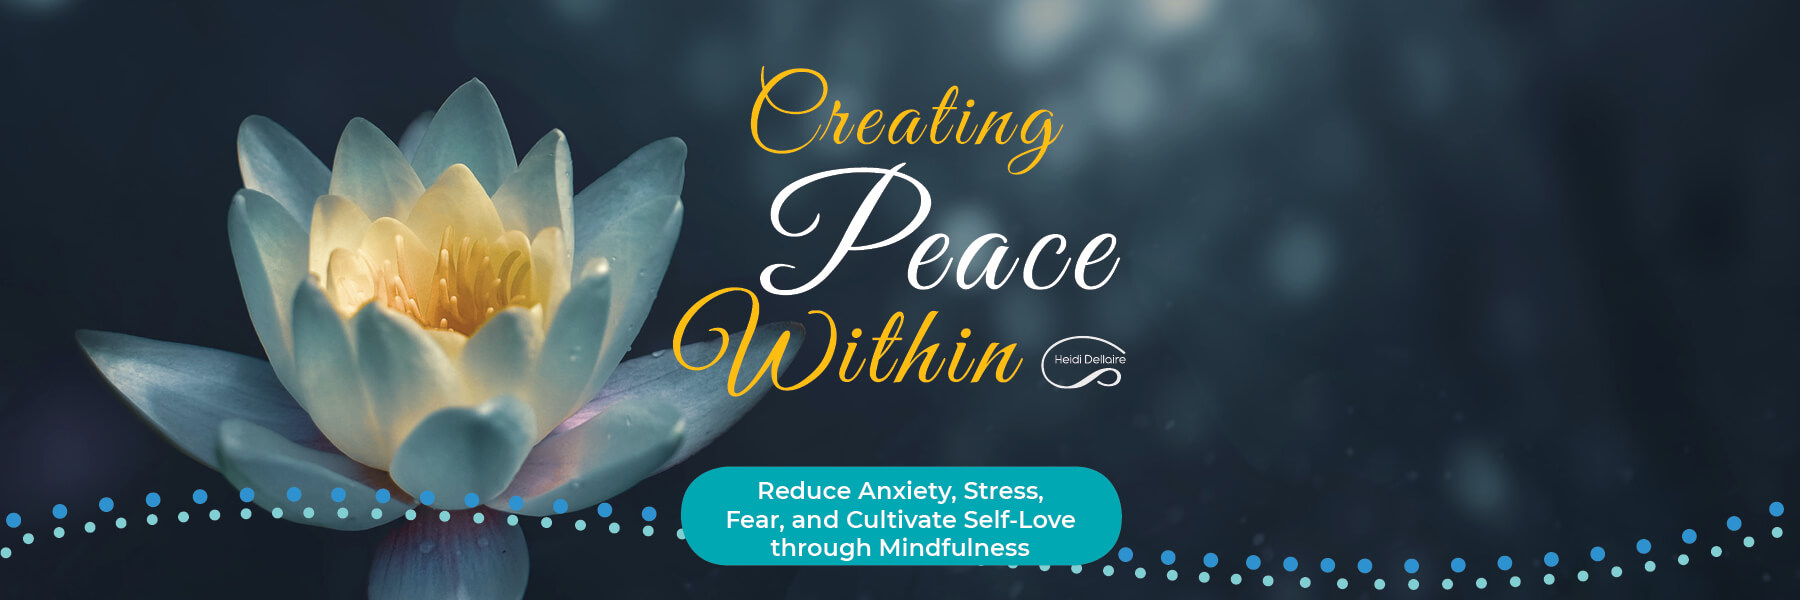 Creating Peace Within